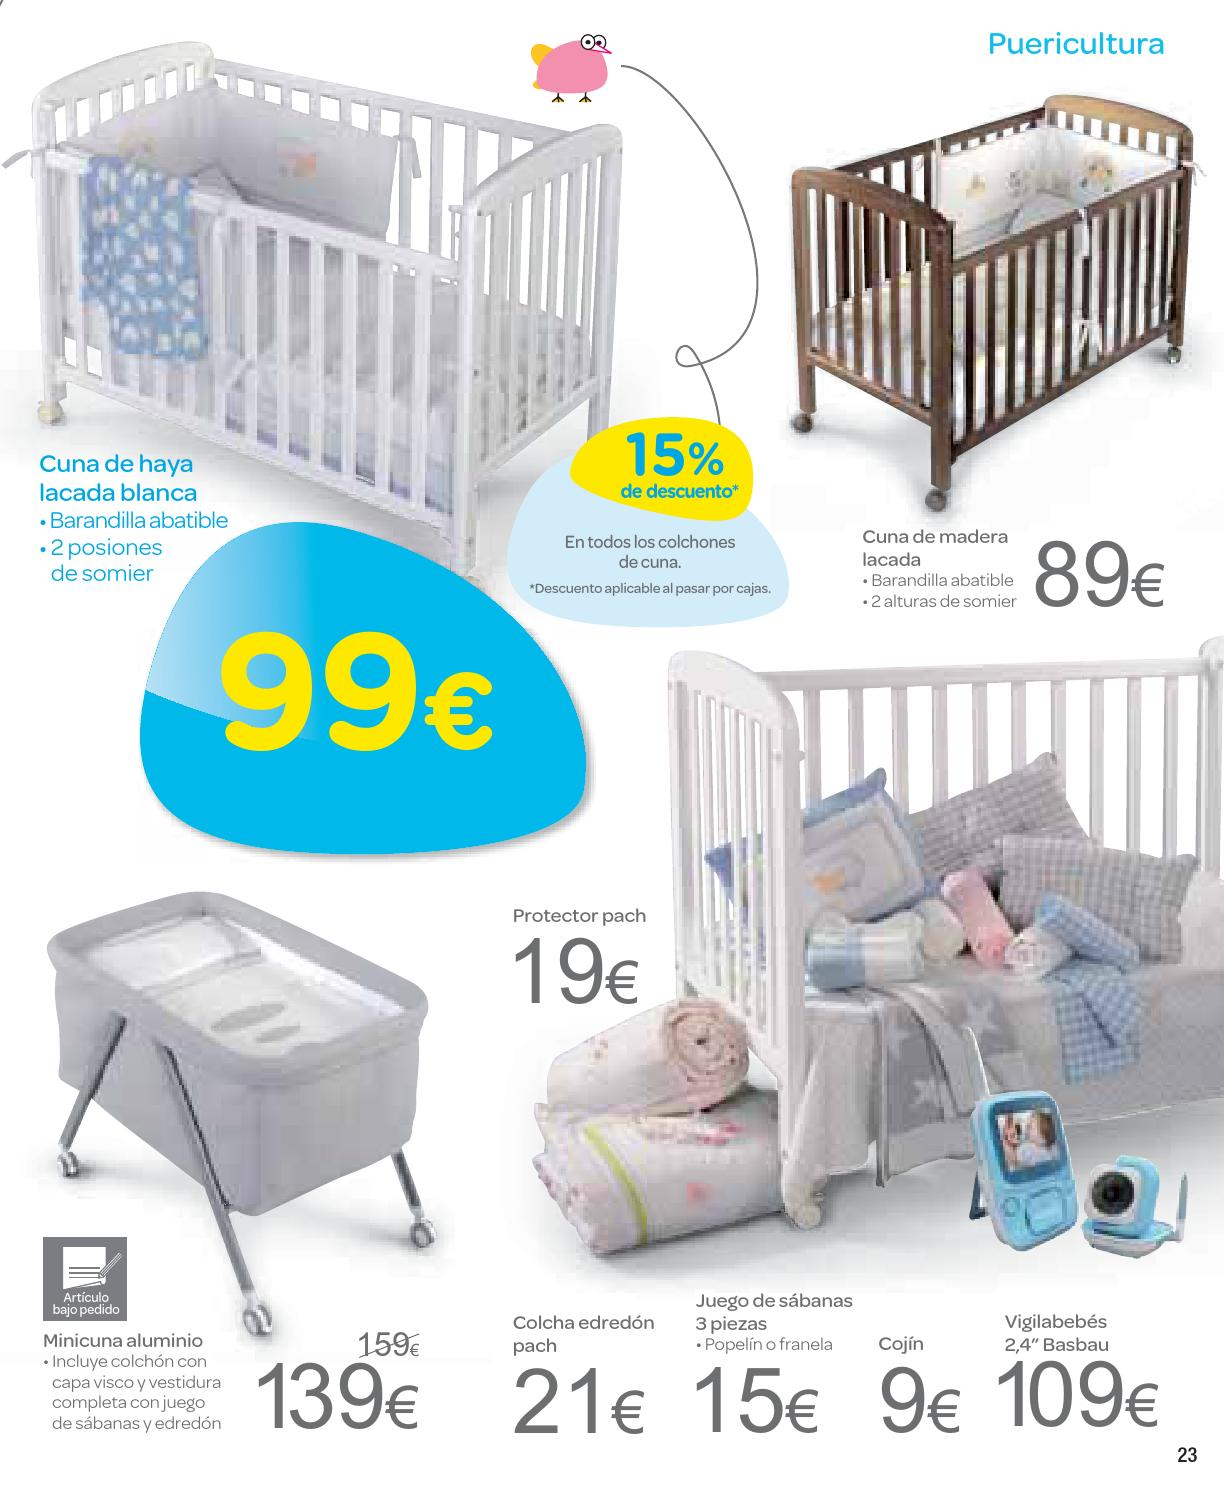 Catalogo carrefour bebe septiembre 2013 by carrefour - Protector cuna carrefour ...